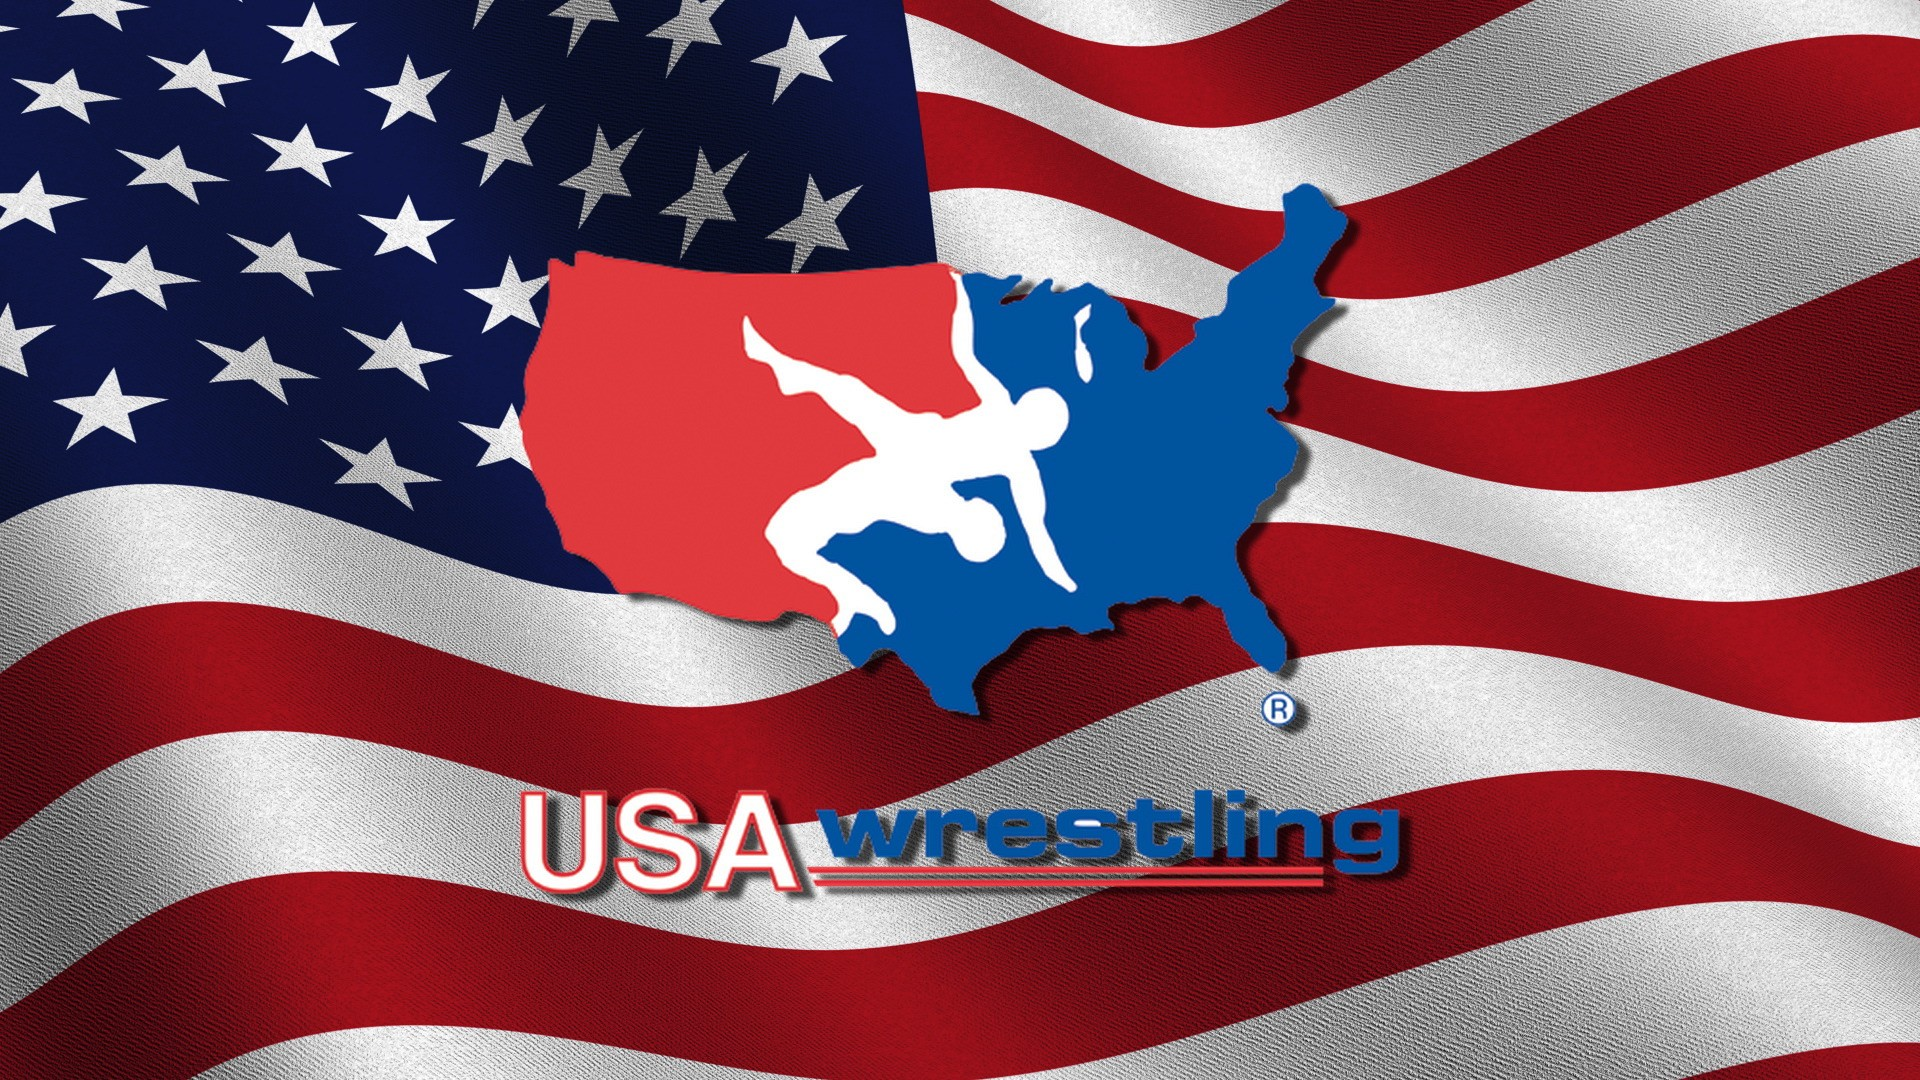 USA Wrestling Wallpapers 1920x1080